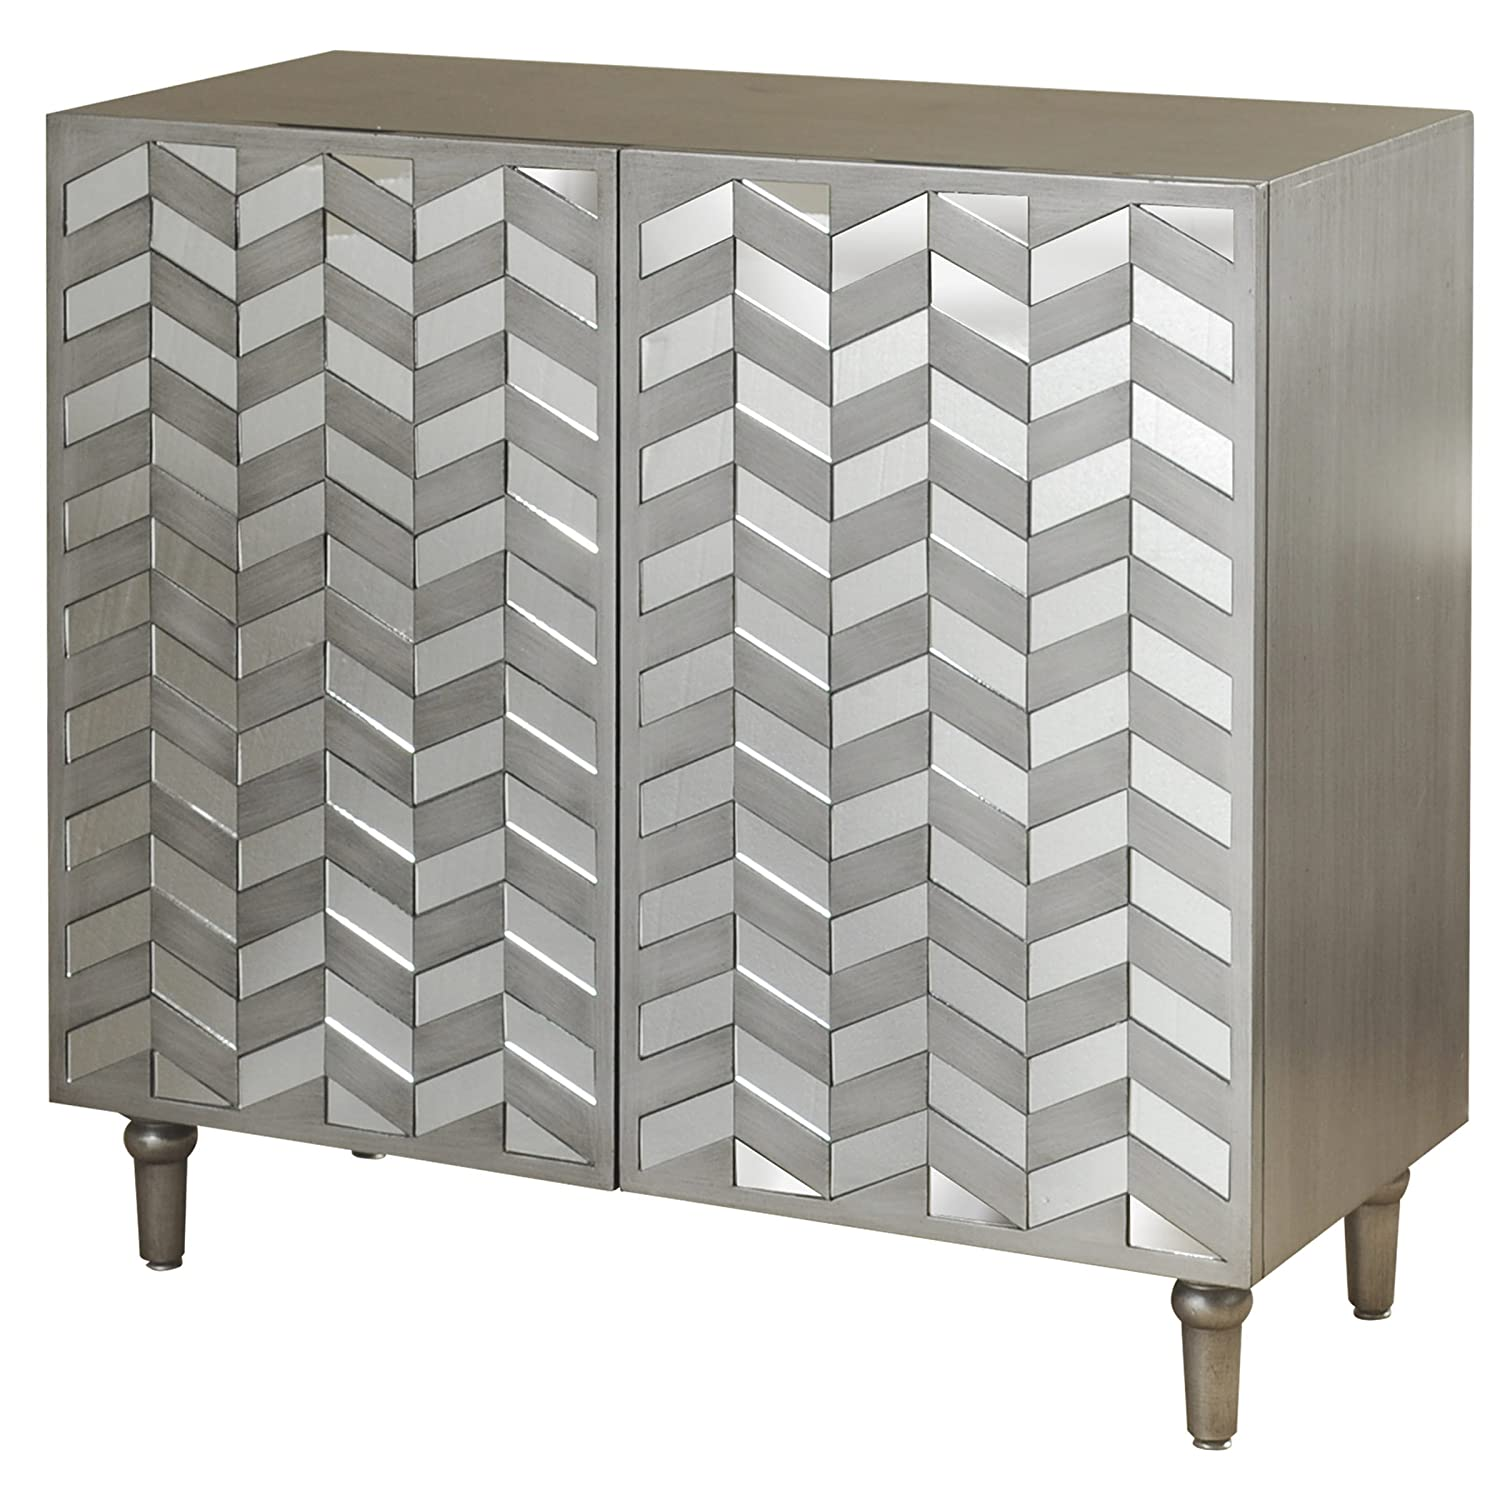 Collective Design SF24793AM Transitional 2 Mirrored Door Fronts-Champagne Silver Credenza